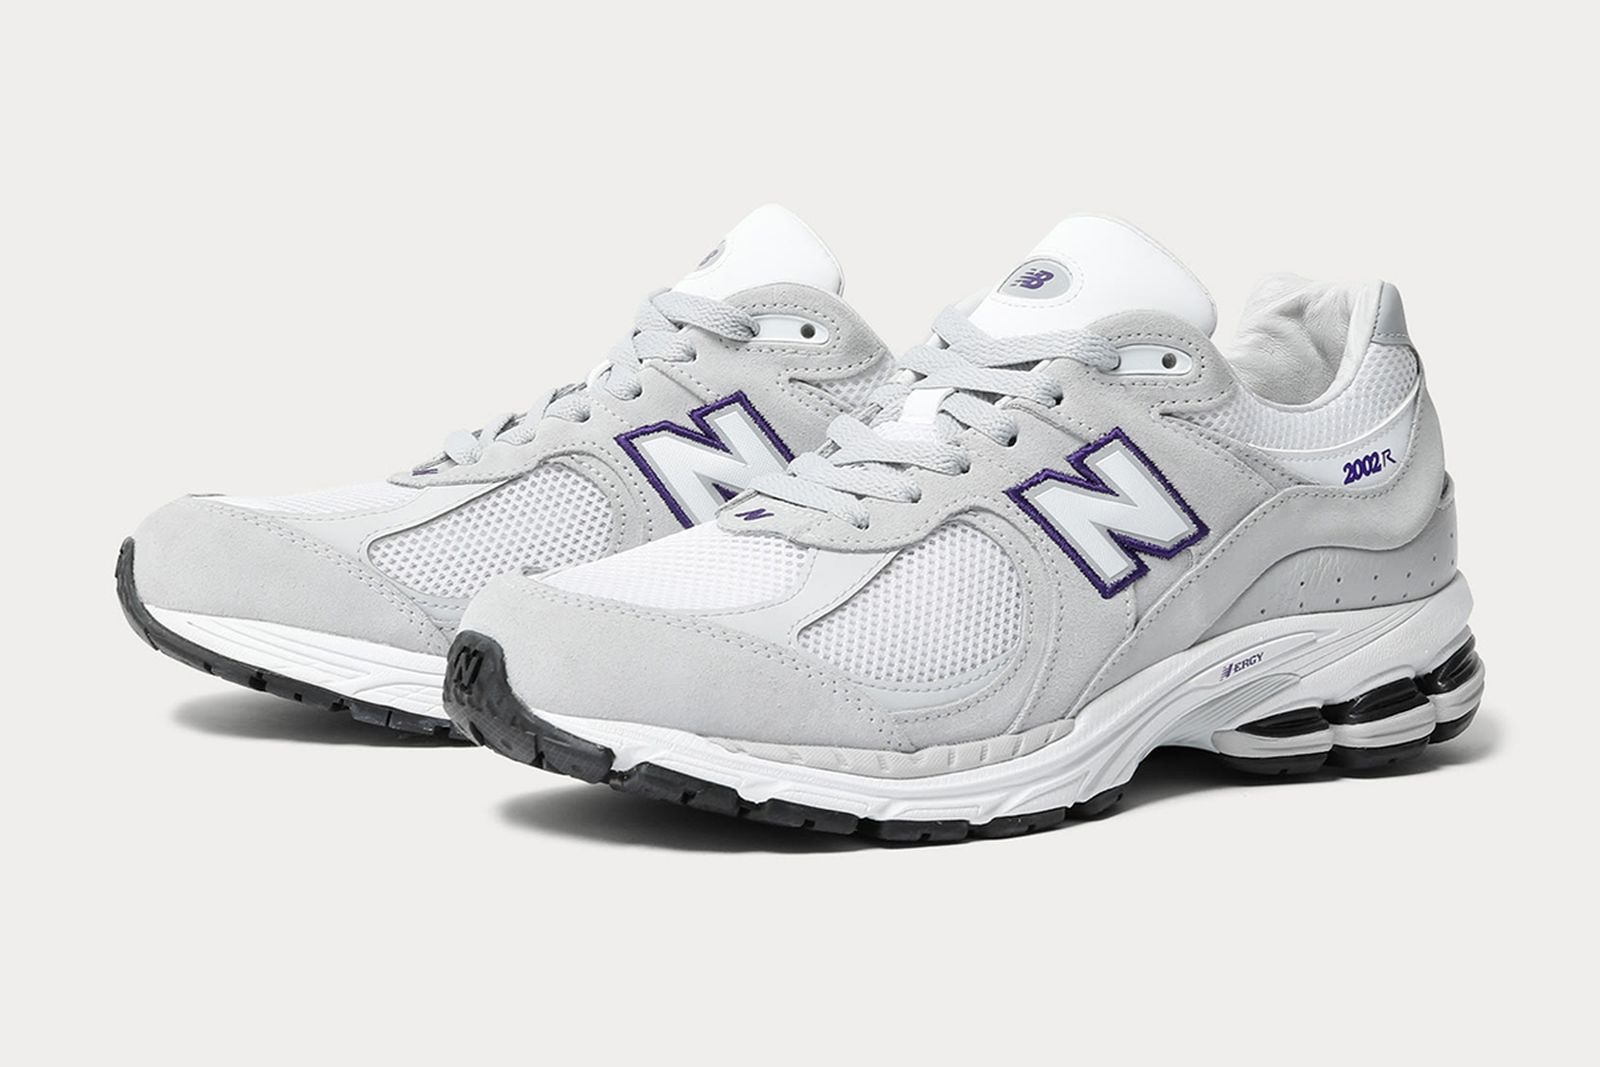 beauty youth united arrows new balance 2002r collab (4)